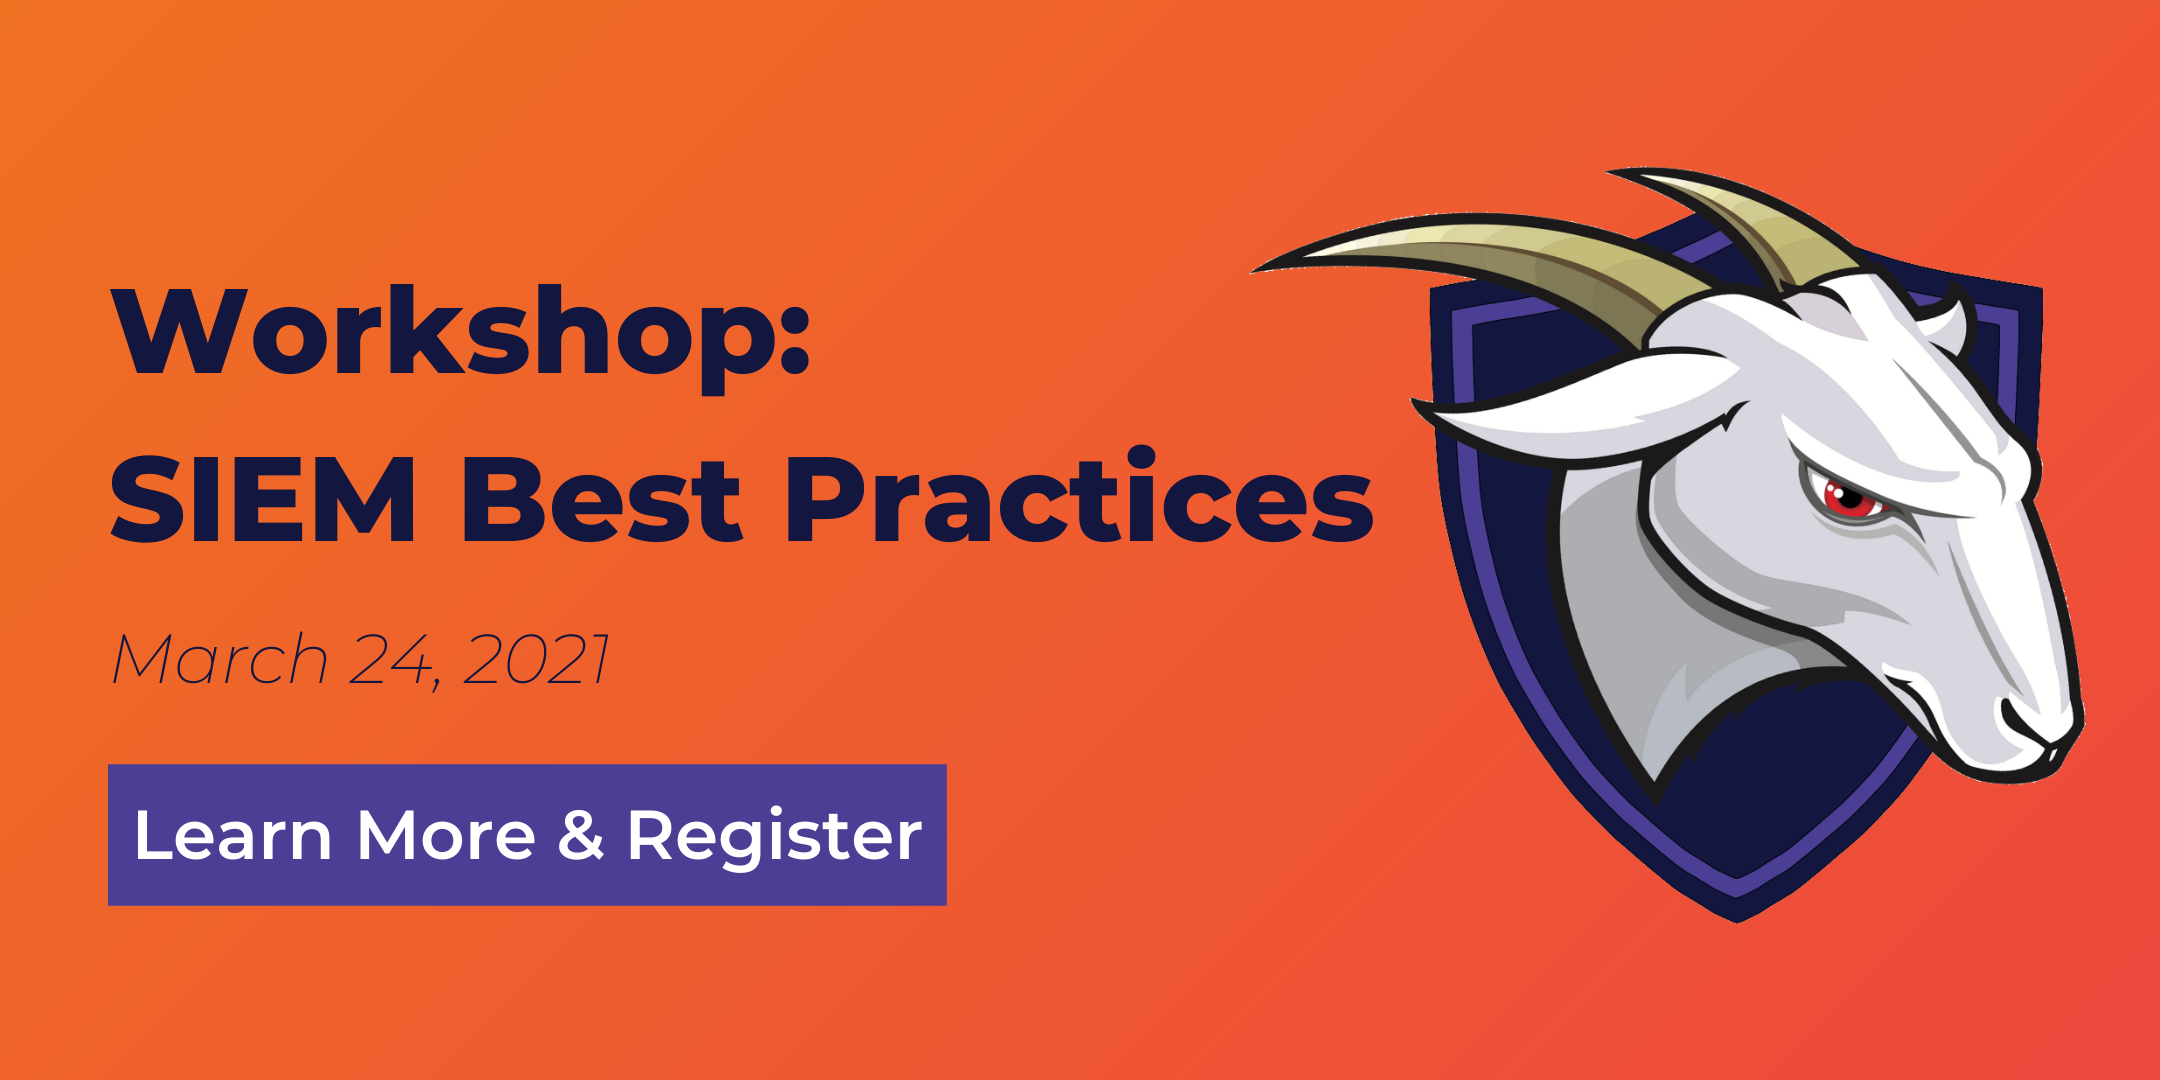 SIEM Best Practices Workshop. March 24, 2021. Learn more and register.